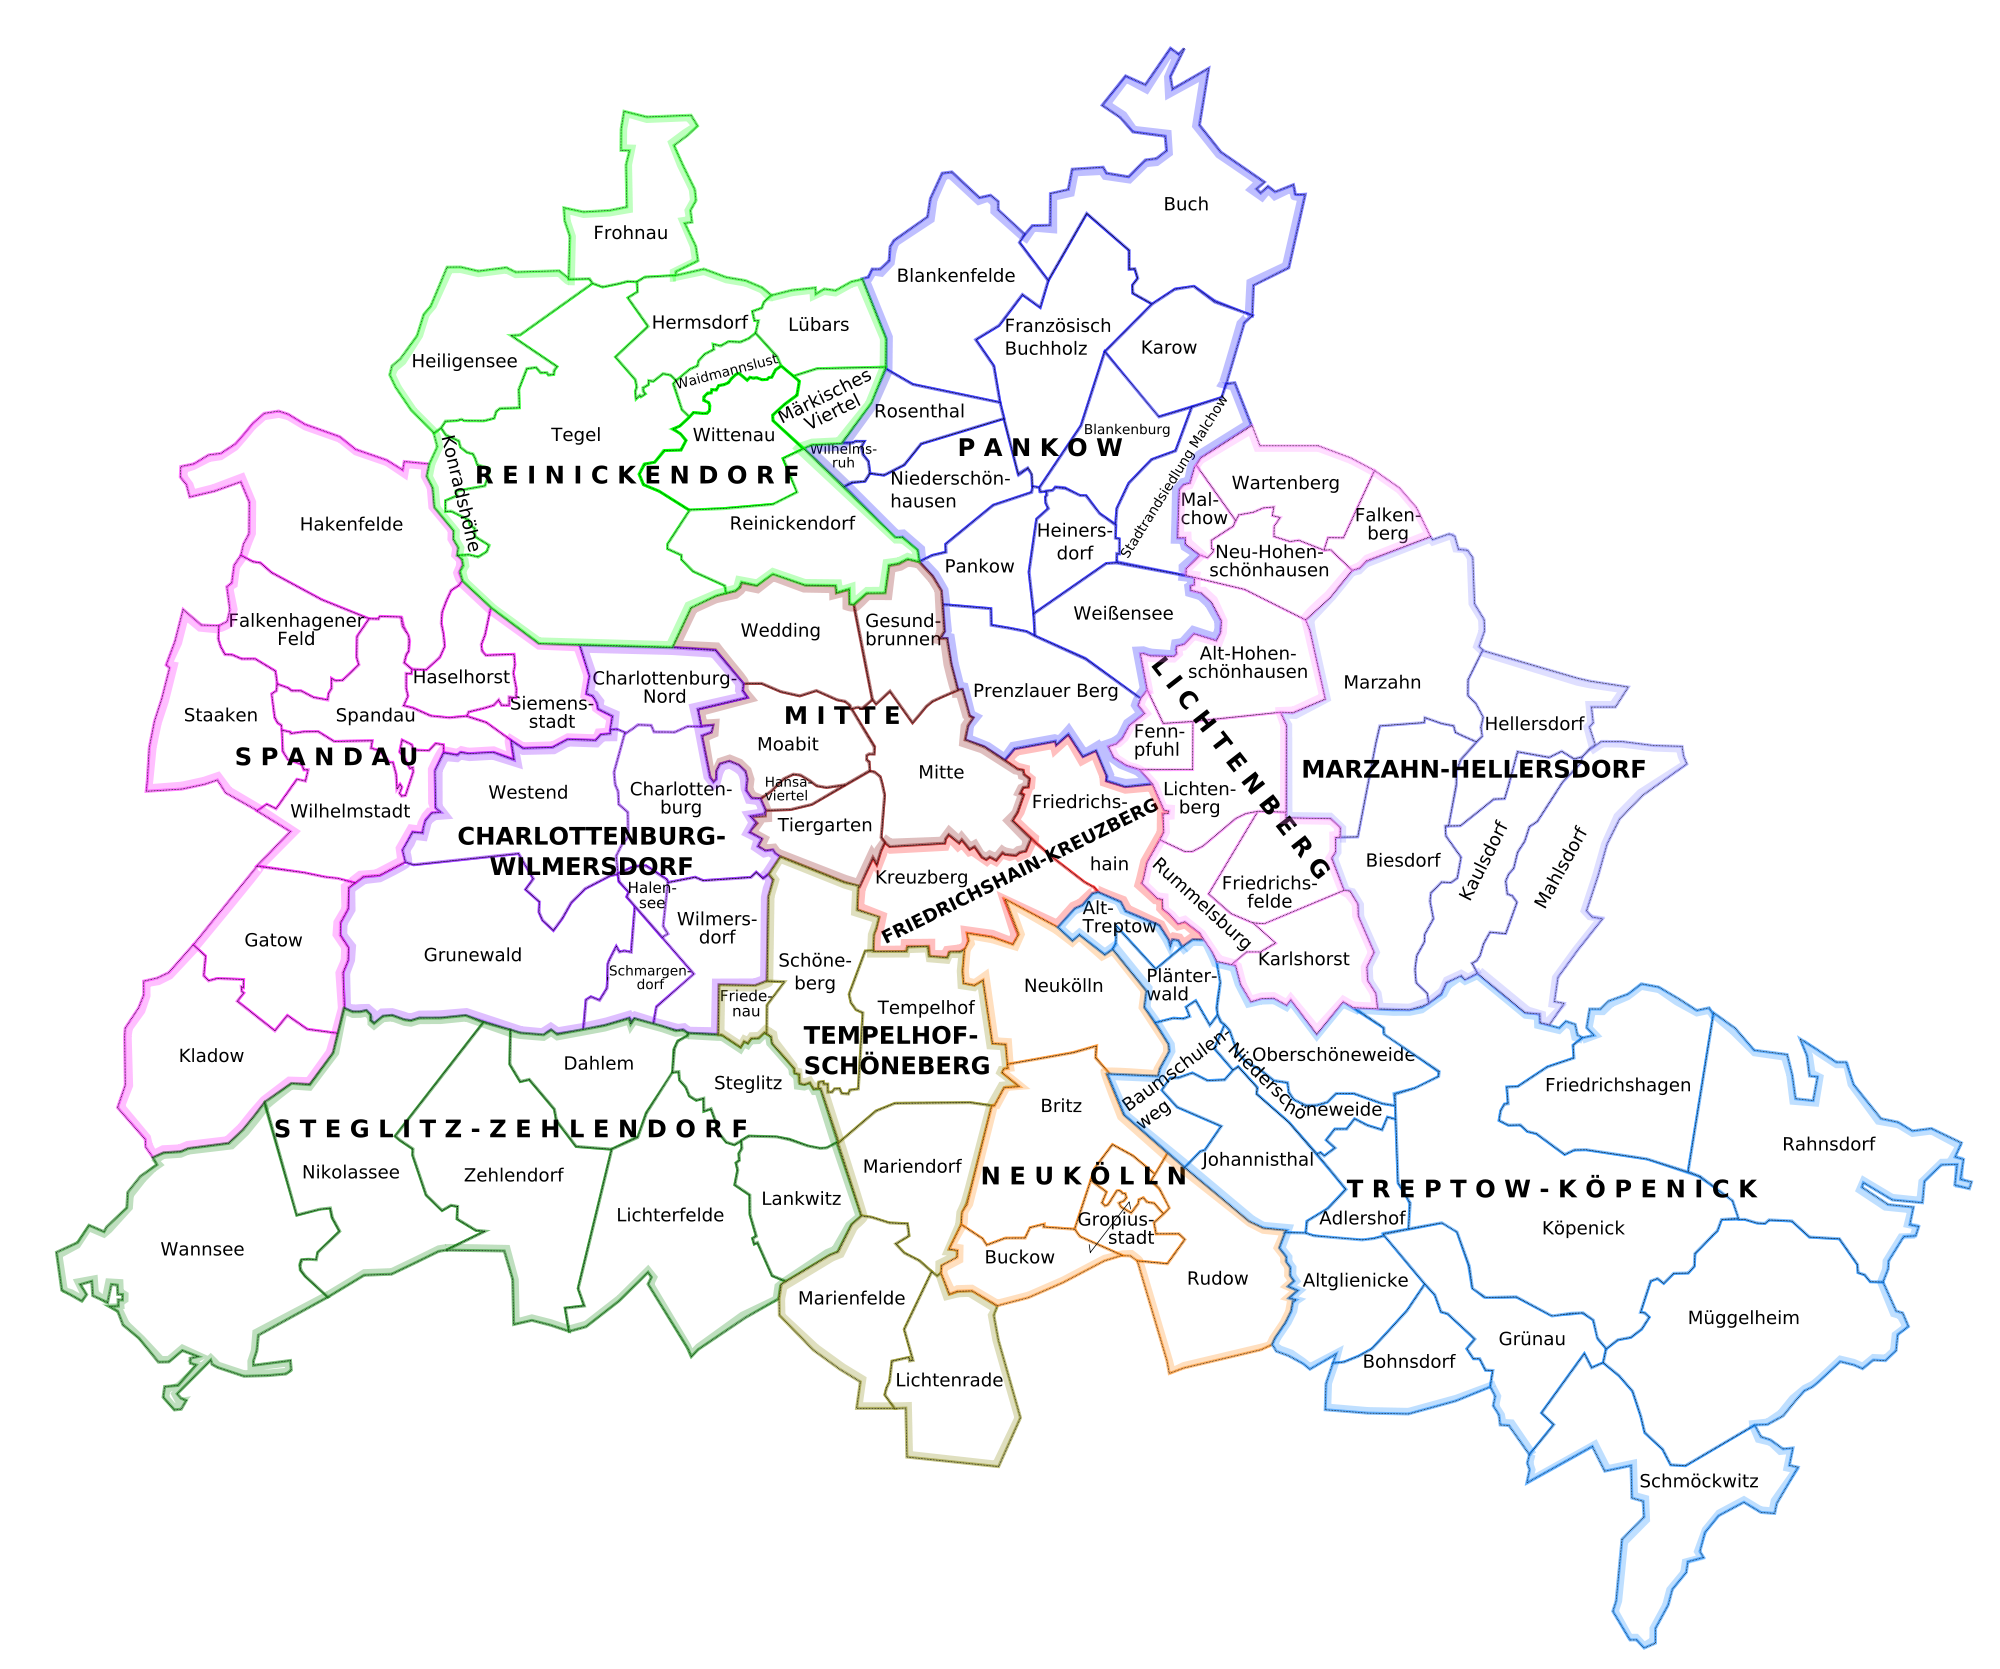 The boroughs of Berlin and their subdivisions 2007